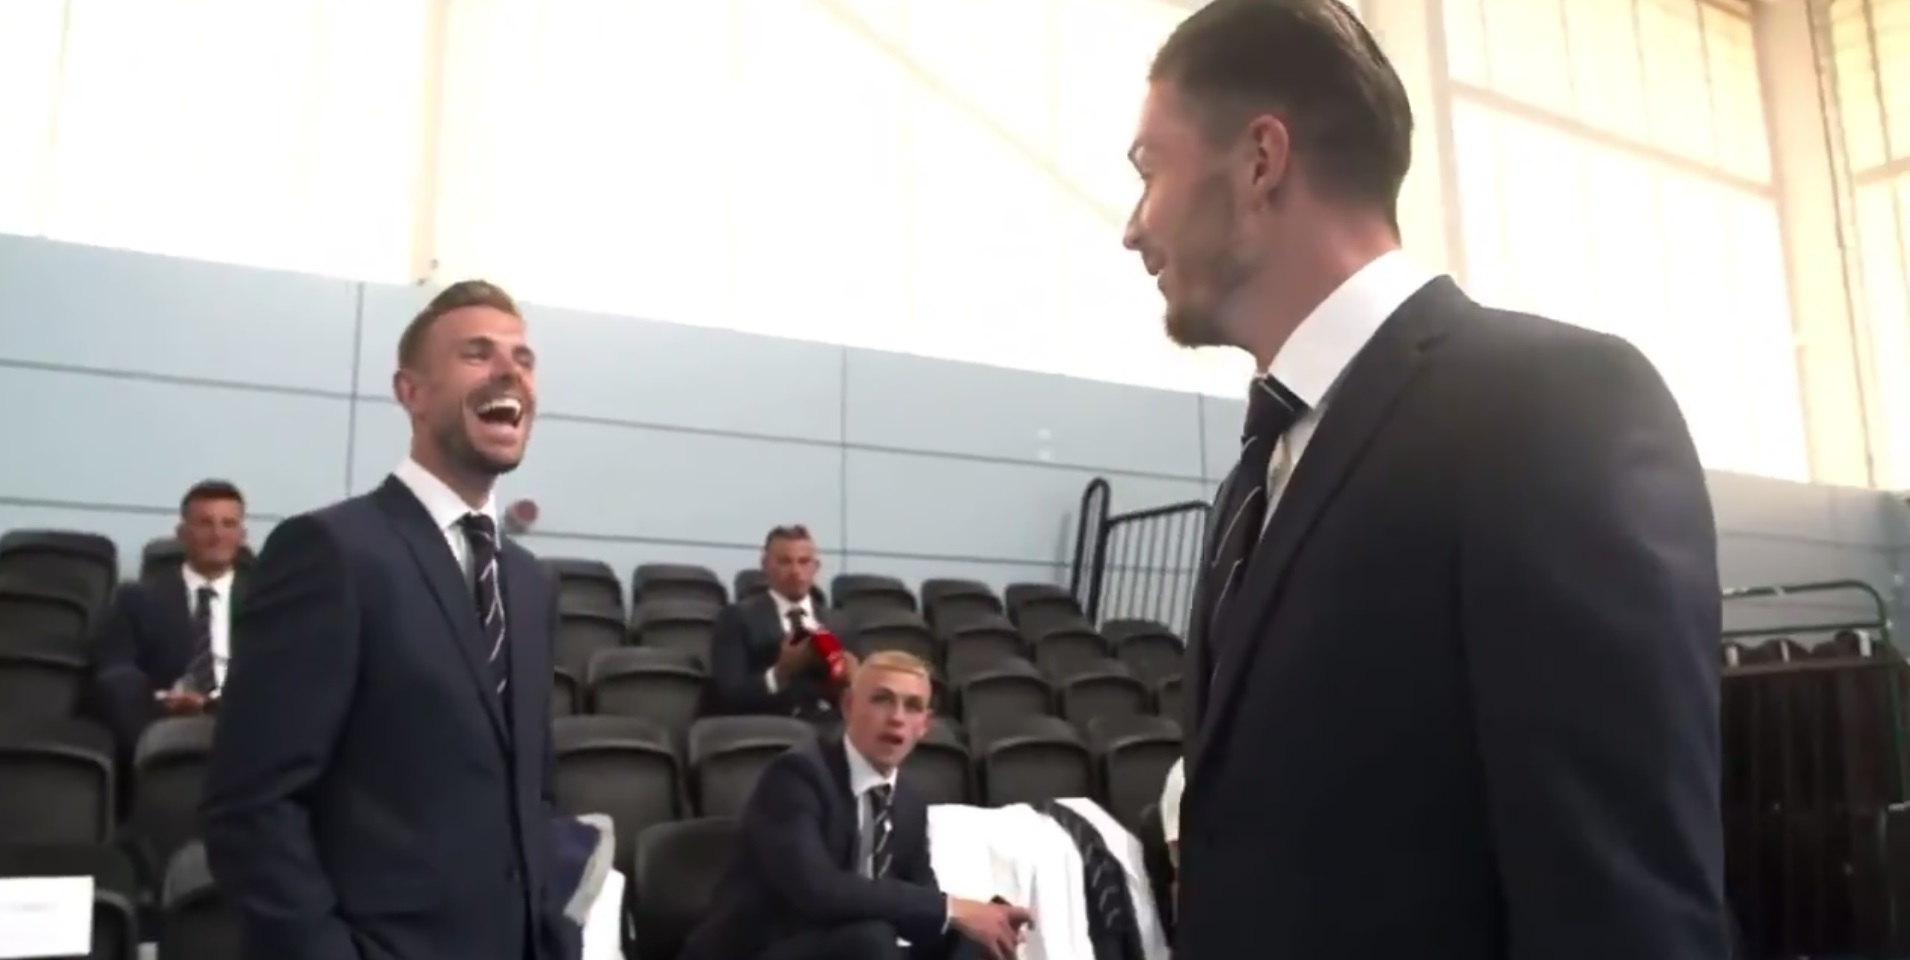 (Video) Henderson & Grealish joke about Champions League; Foden is gob-smacked